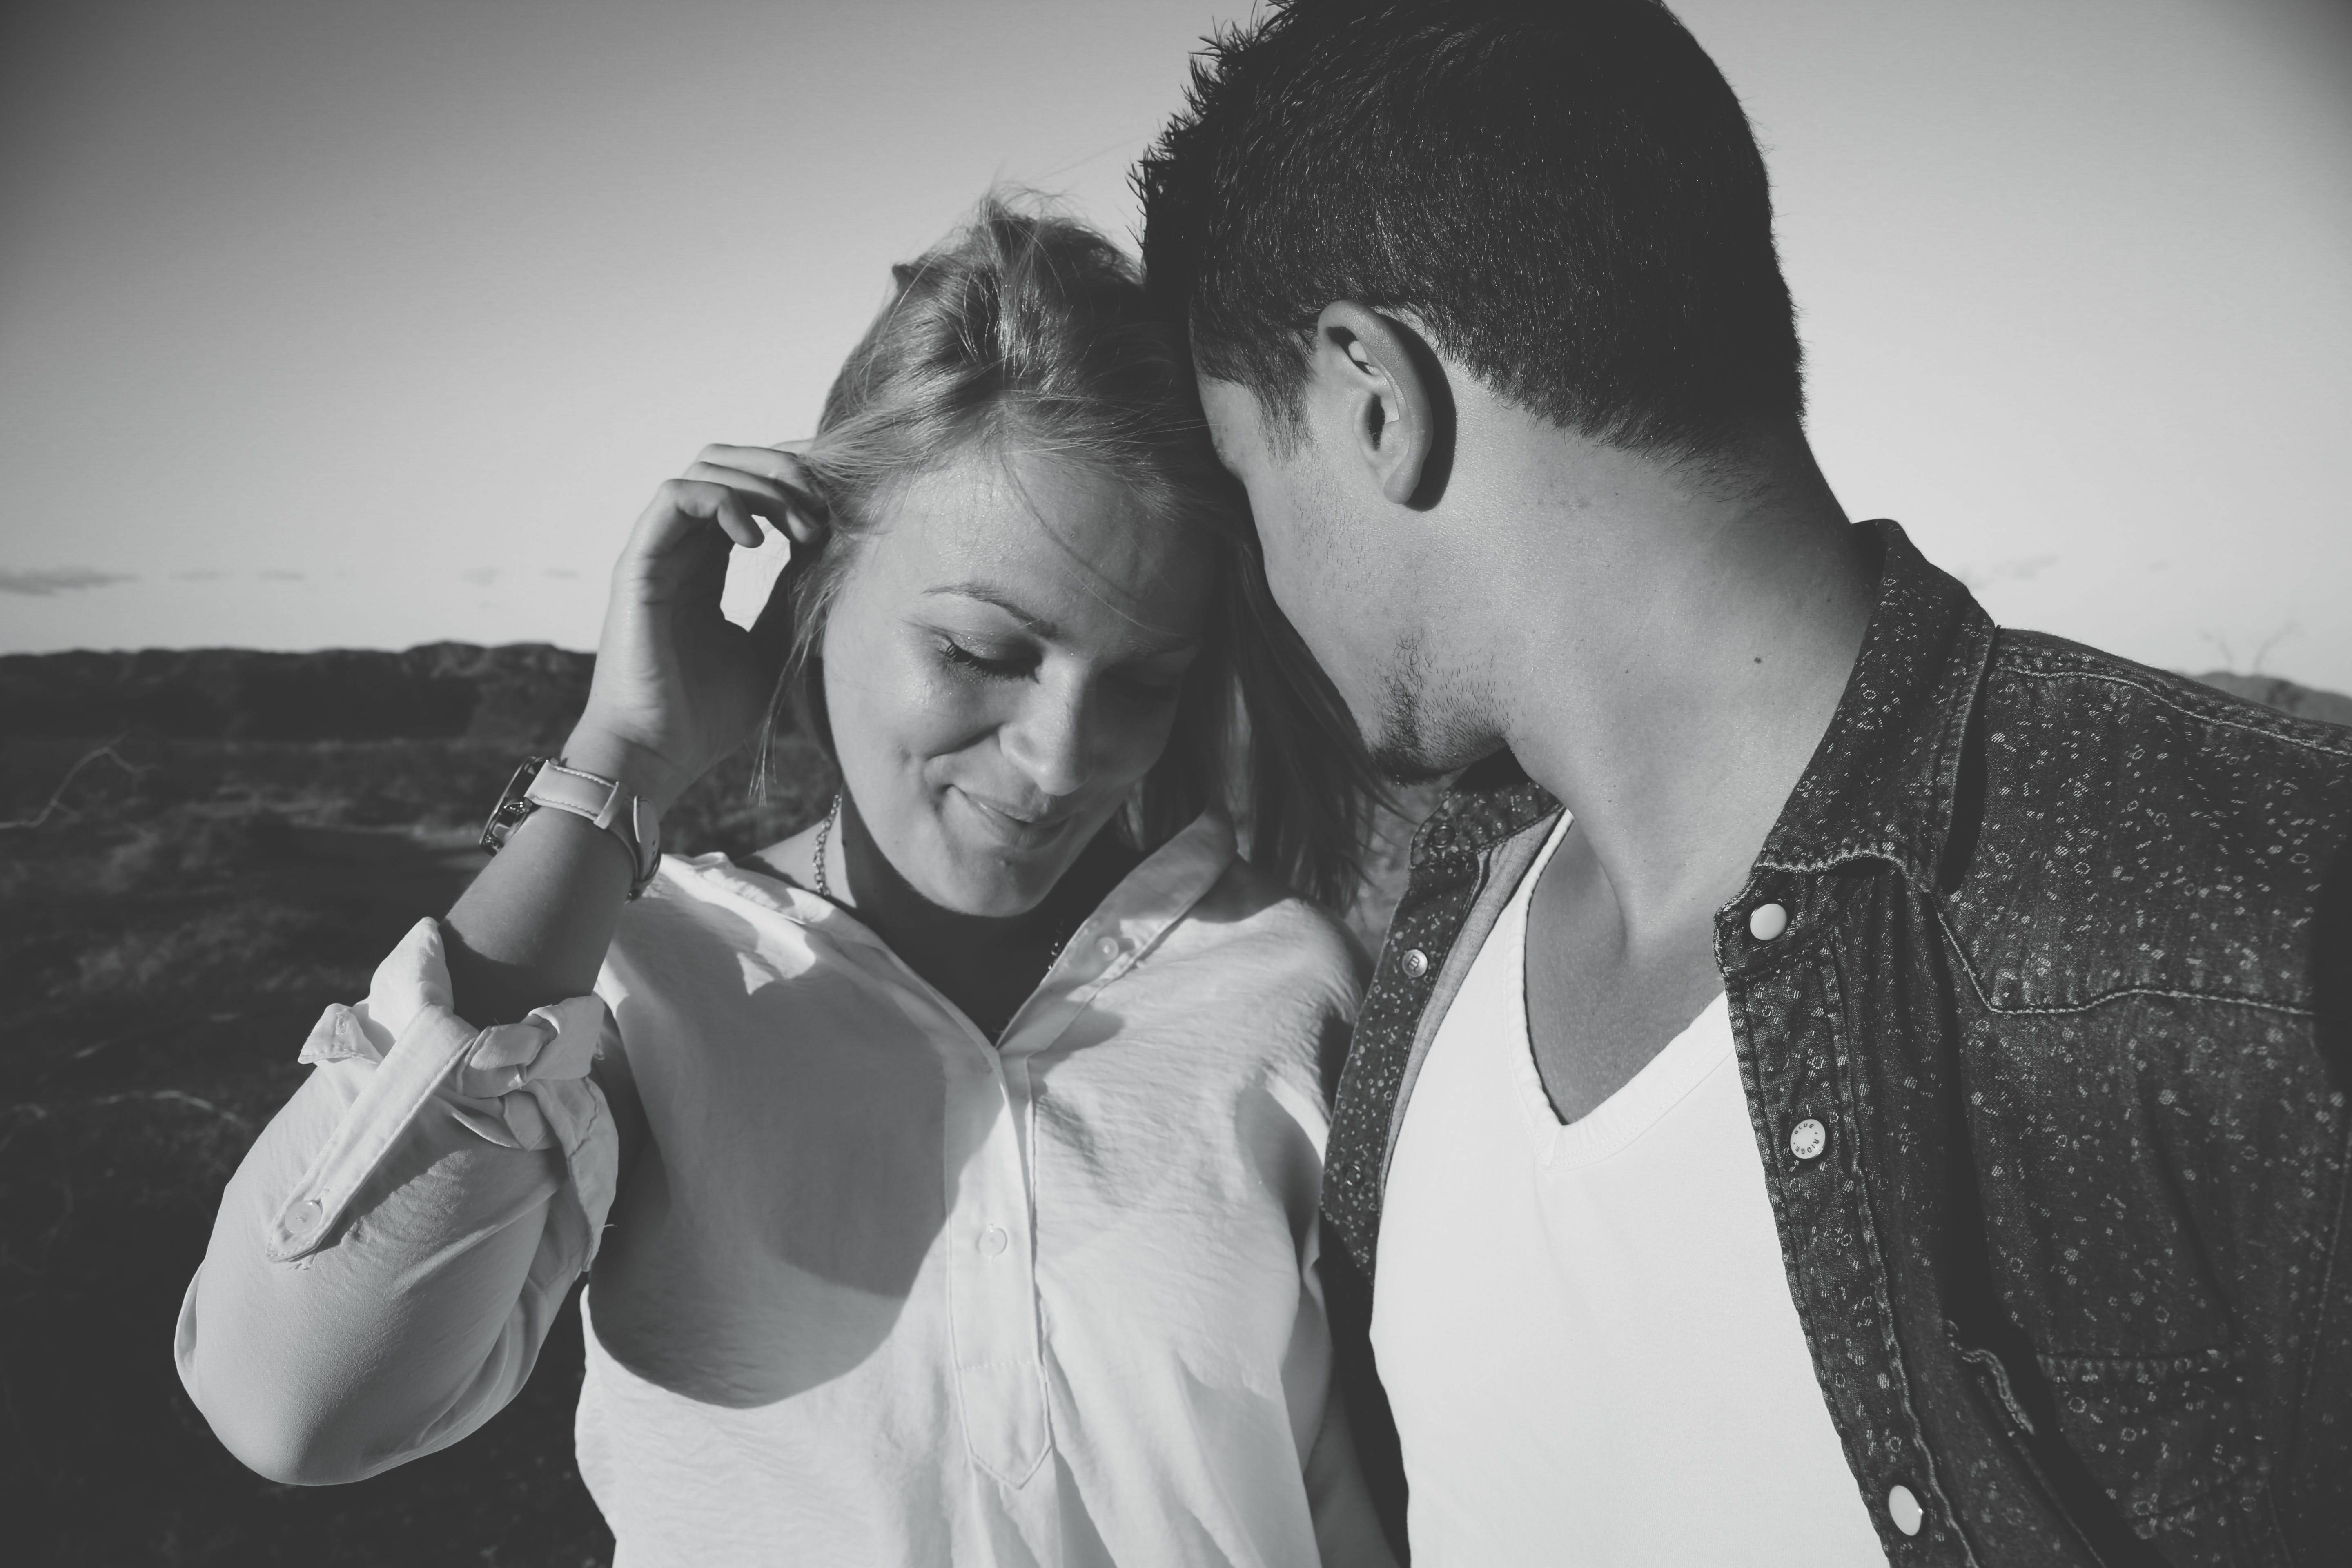 Jealous Lover: Reassure And Win Him Over